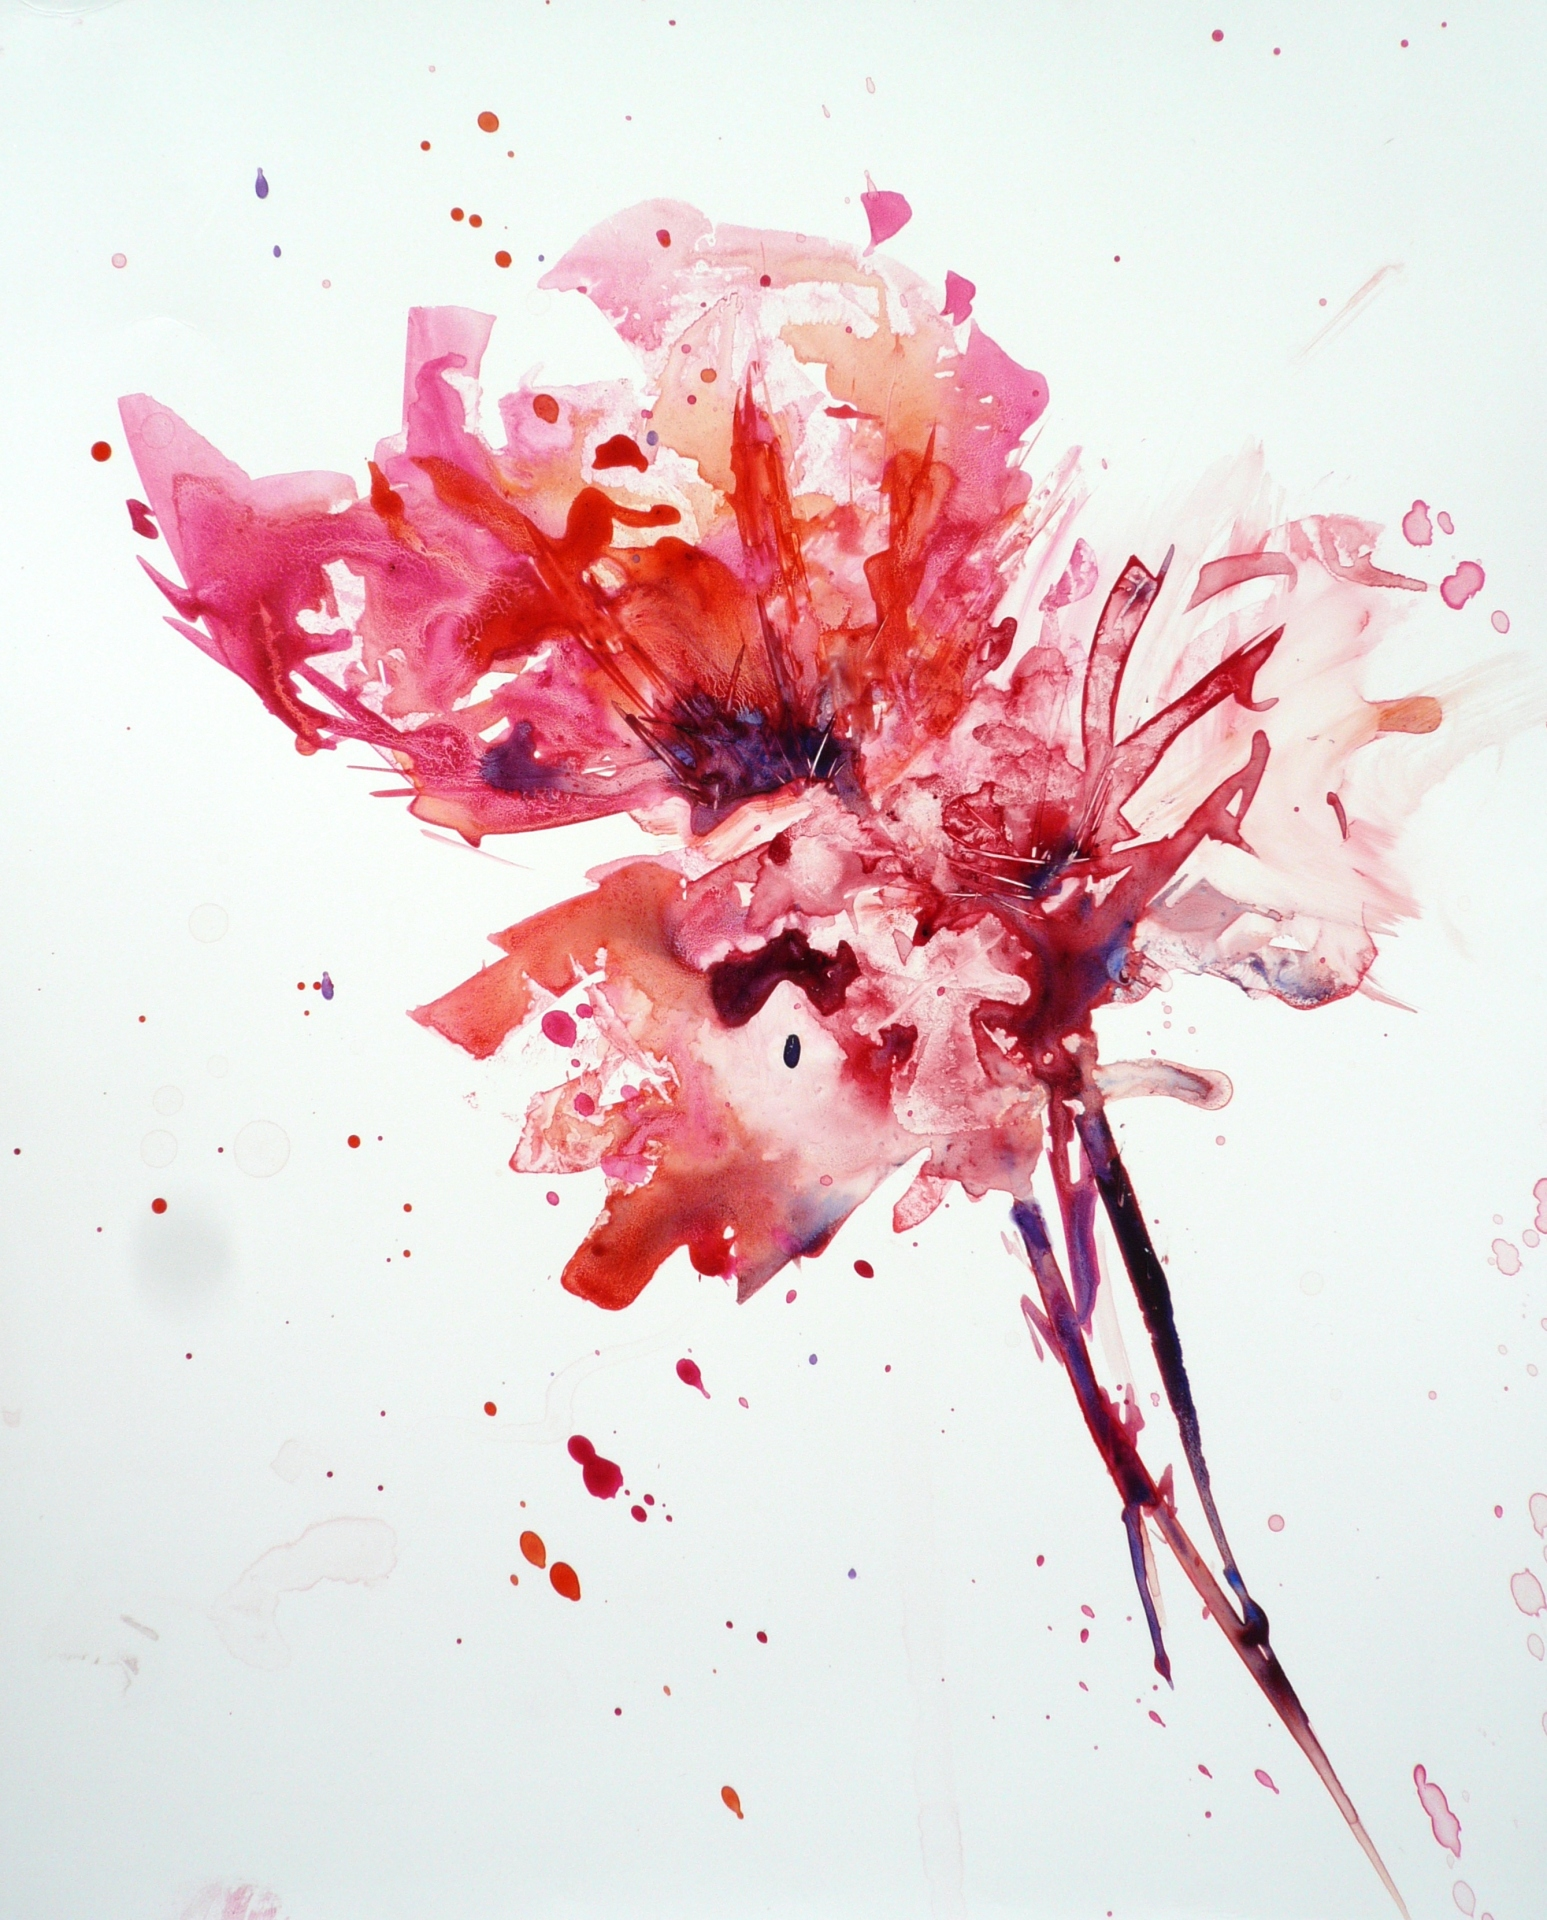 watercolour painting of a bunch of dark pink and red flowers with pointed petals and stems